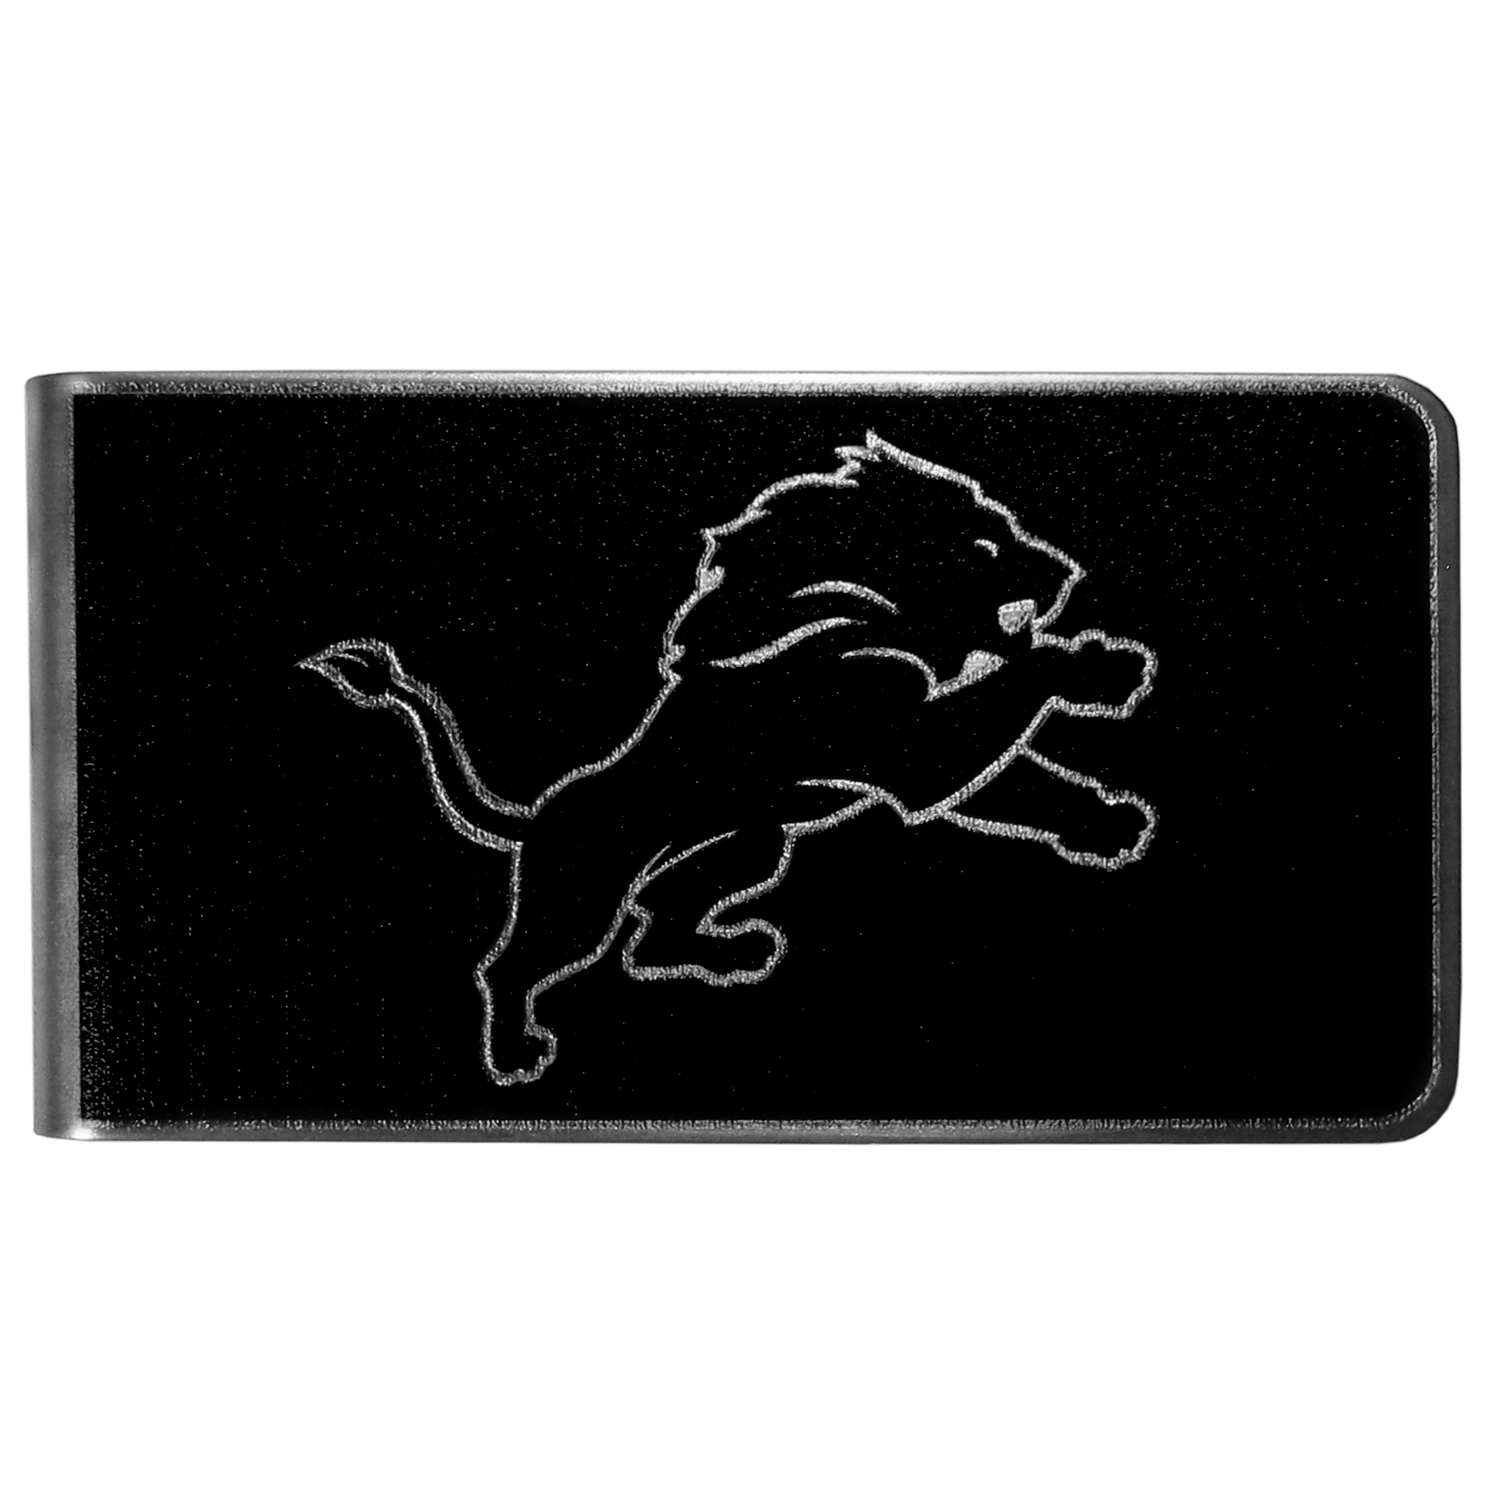 Detroit Lions Black and Steel Money Clip - Our monochromatic steel money clips have a classic style and superior quality. The strong, steel clip has a black overlay of the Detroit Lions logo over the brushed metal finish creating a stylish men's fashion accessory that would make any fan proud.